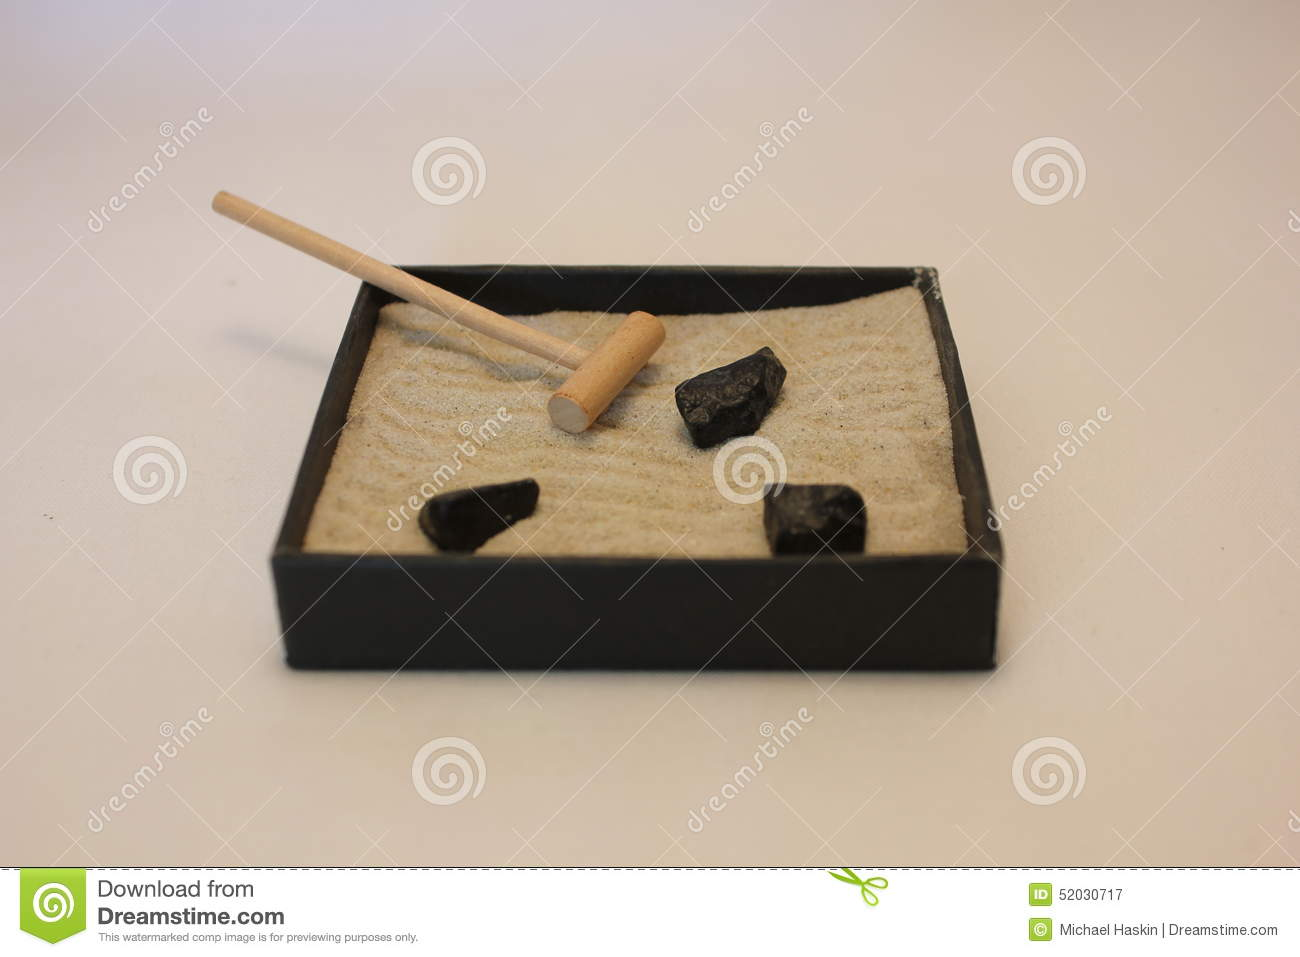 How Build Desktop Zen Garden